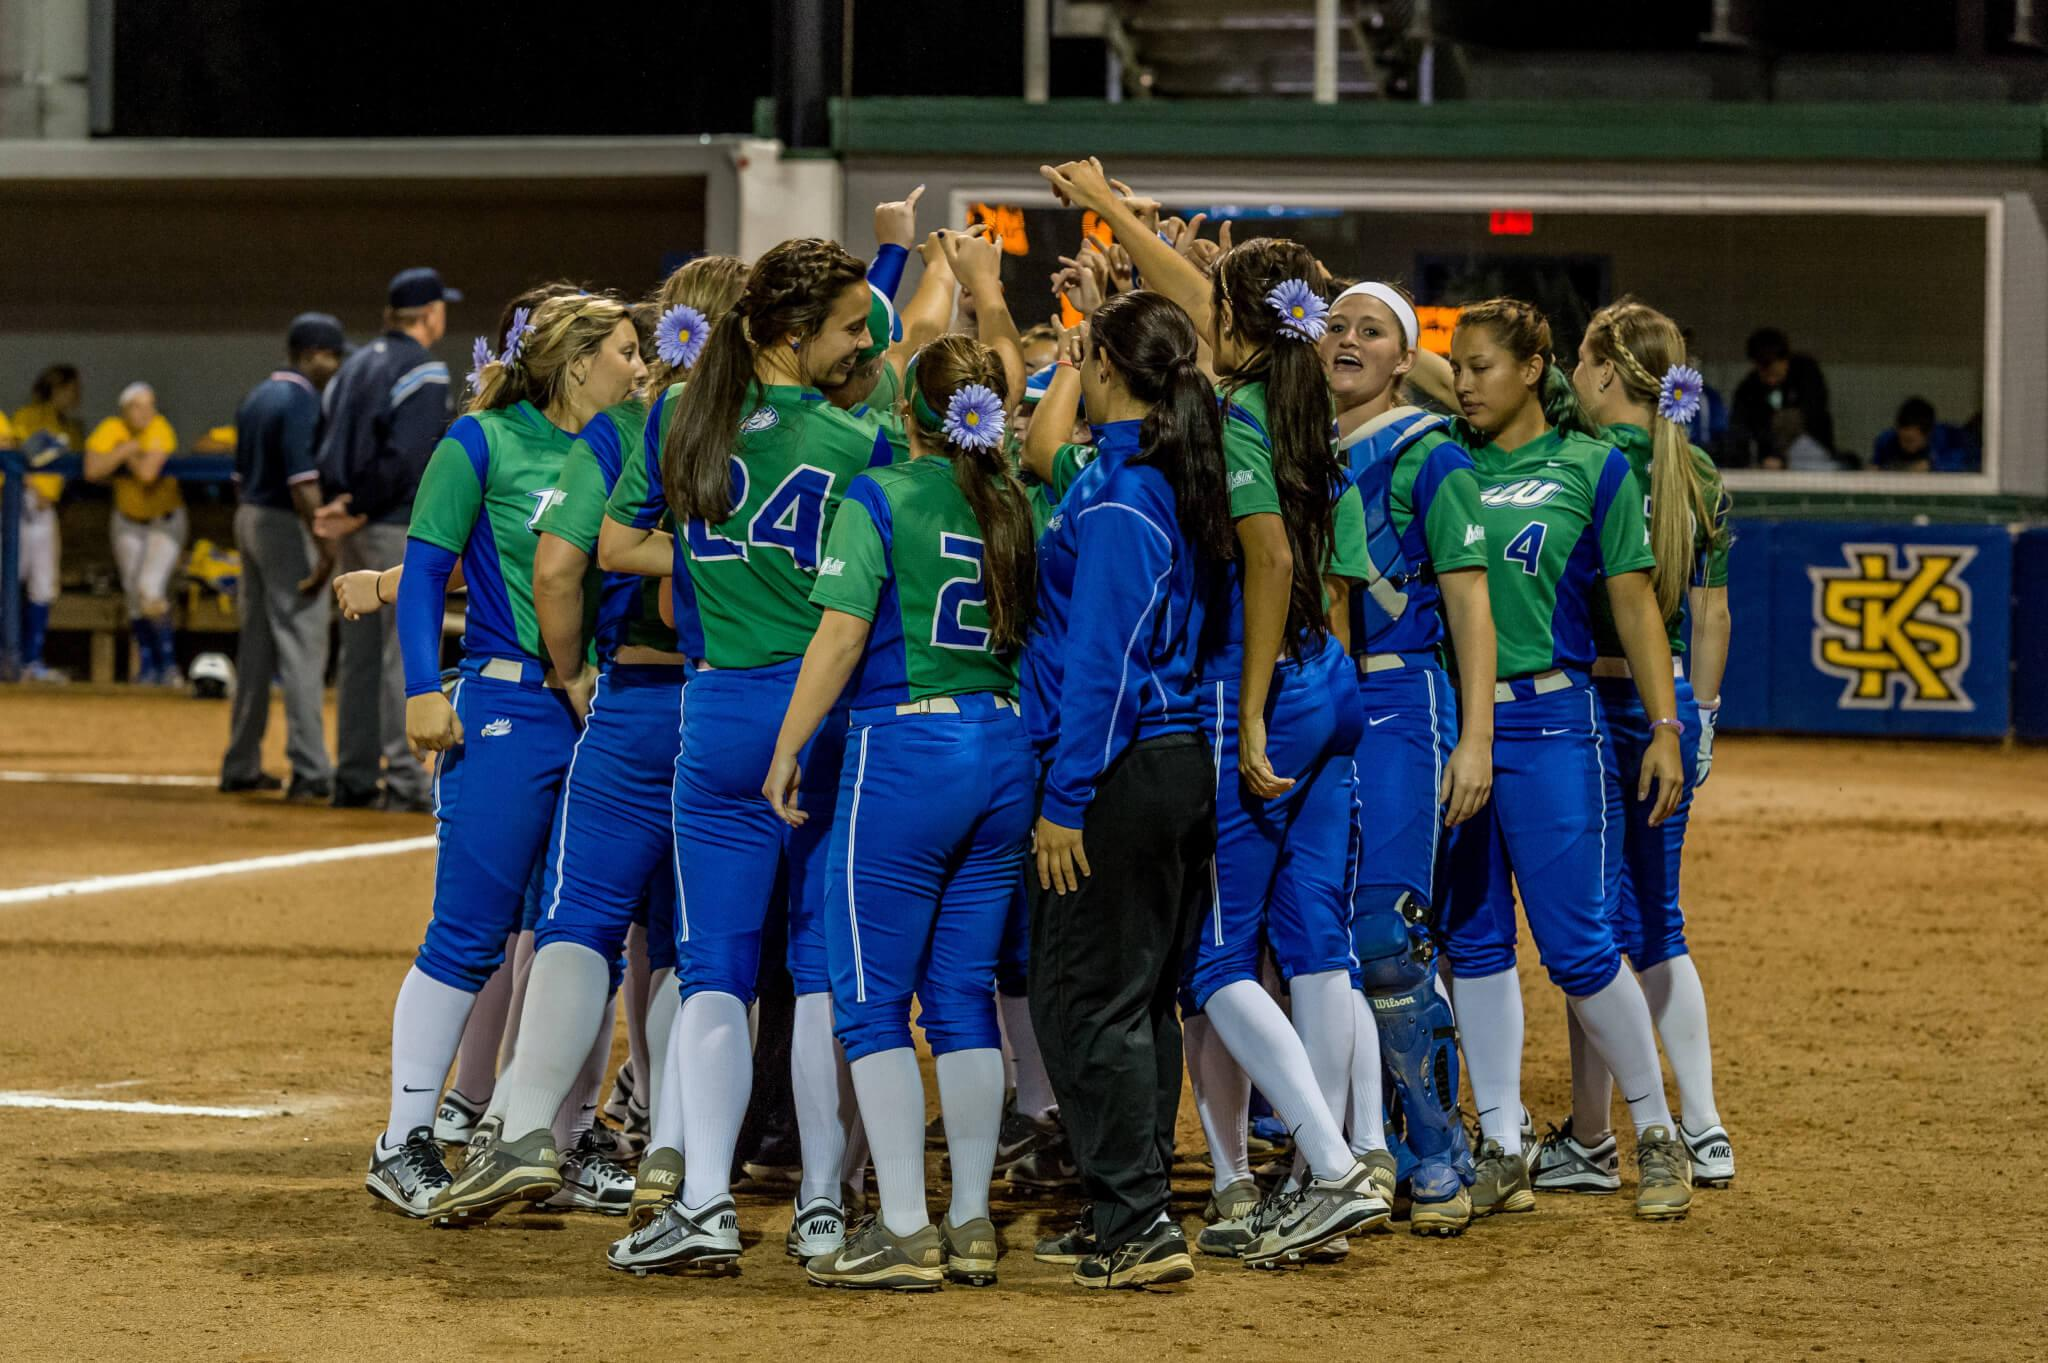 Softball welcomes back experienced roster for 2017 season